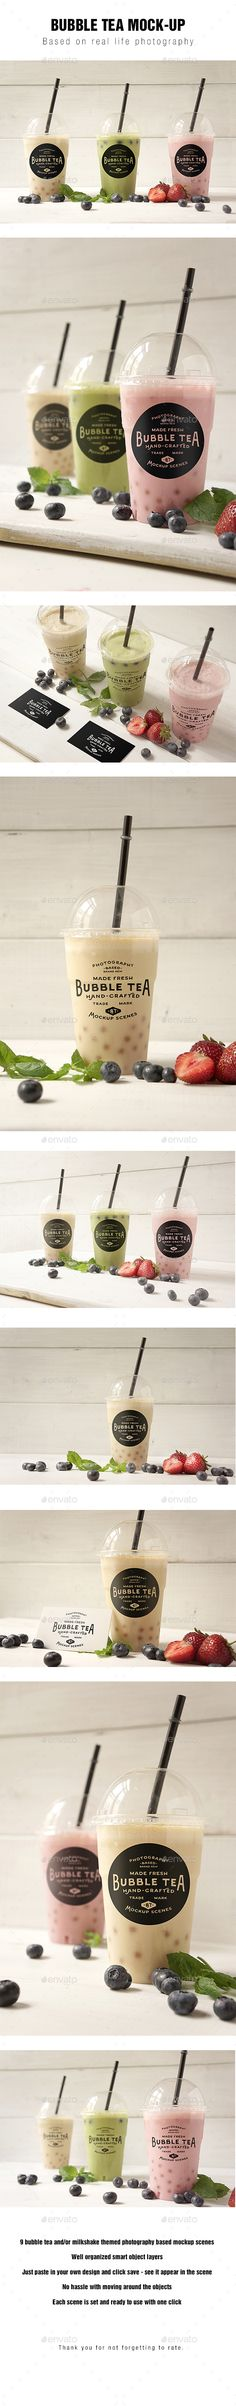 Bubble Tea Mockup. Download here: http://graphicriver.net/item/bubble-tea-mockup/16919519?ref=ksioks